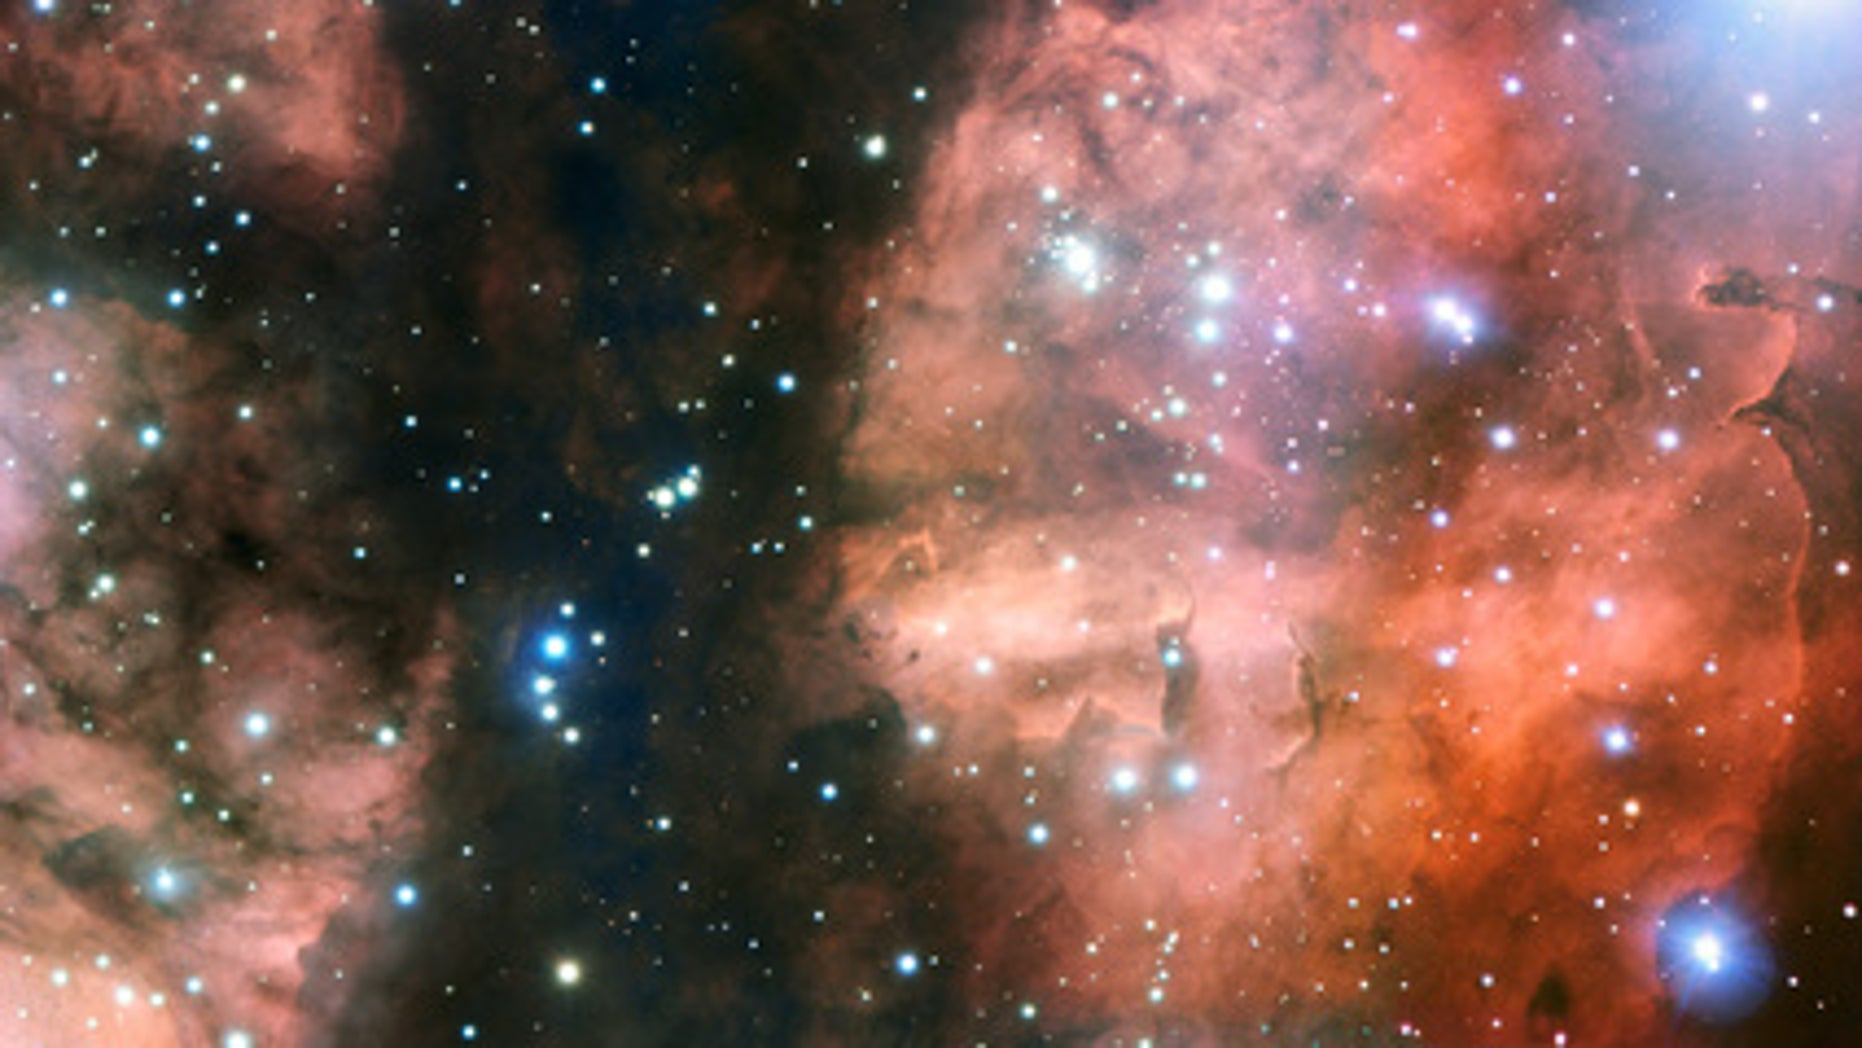 ESO's Very Large Telescope (VLT) has taken the most detailed image so far of a spectacular part of the stellar nursery called NGC 6357. The view shows many hot young stars, glowing clouds of gas and weird dust formations sculpted by ultraviolet radiation and stellar winds.